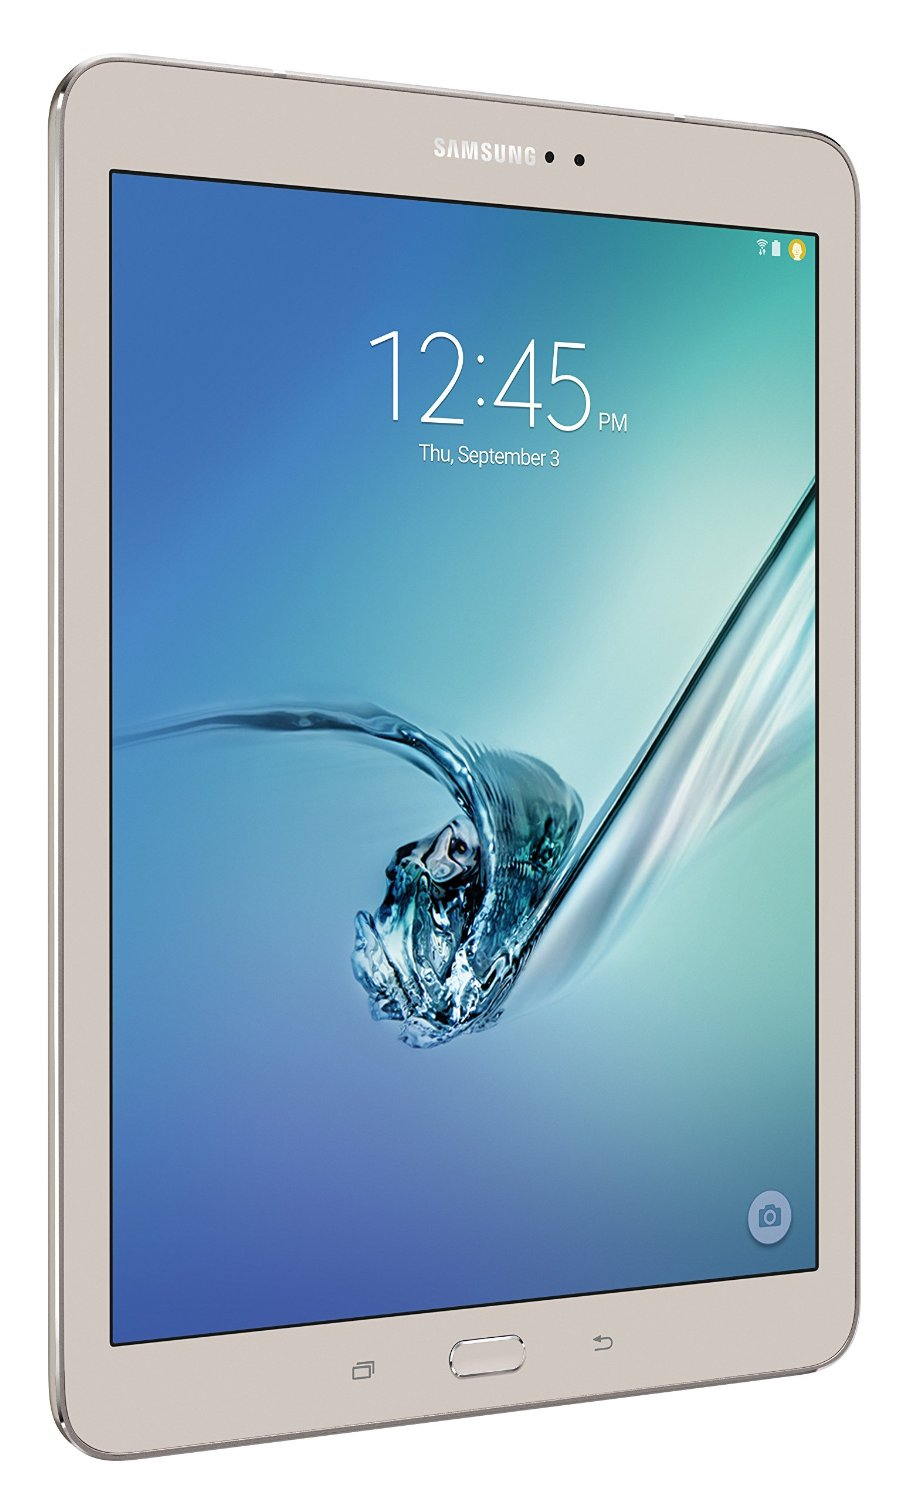 samsung galaxy tab s2 release date september 3 in the us. Black Bedroom Furniture Sets. Home Design Ideas